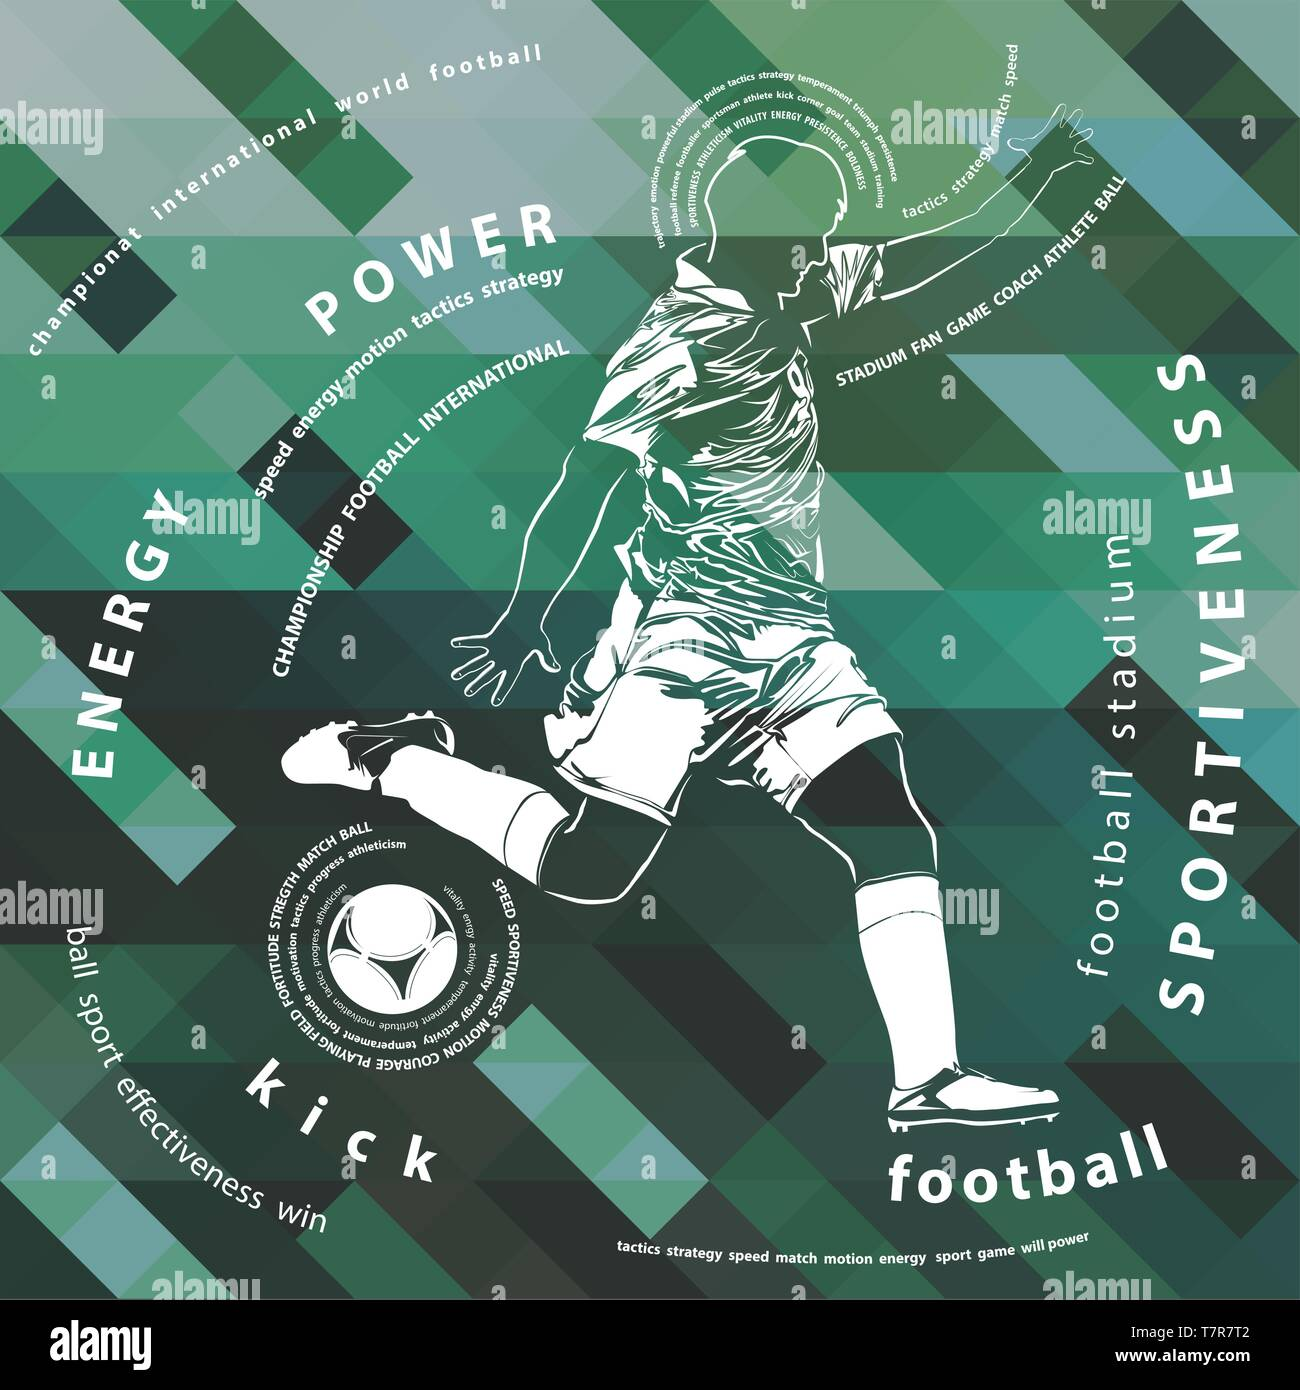 vector illustration of football(soccer) player on colorful background - Stock Vector